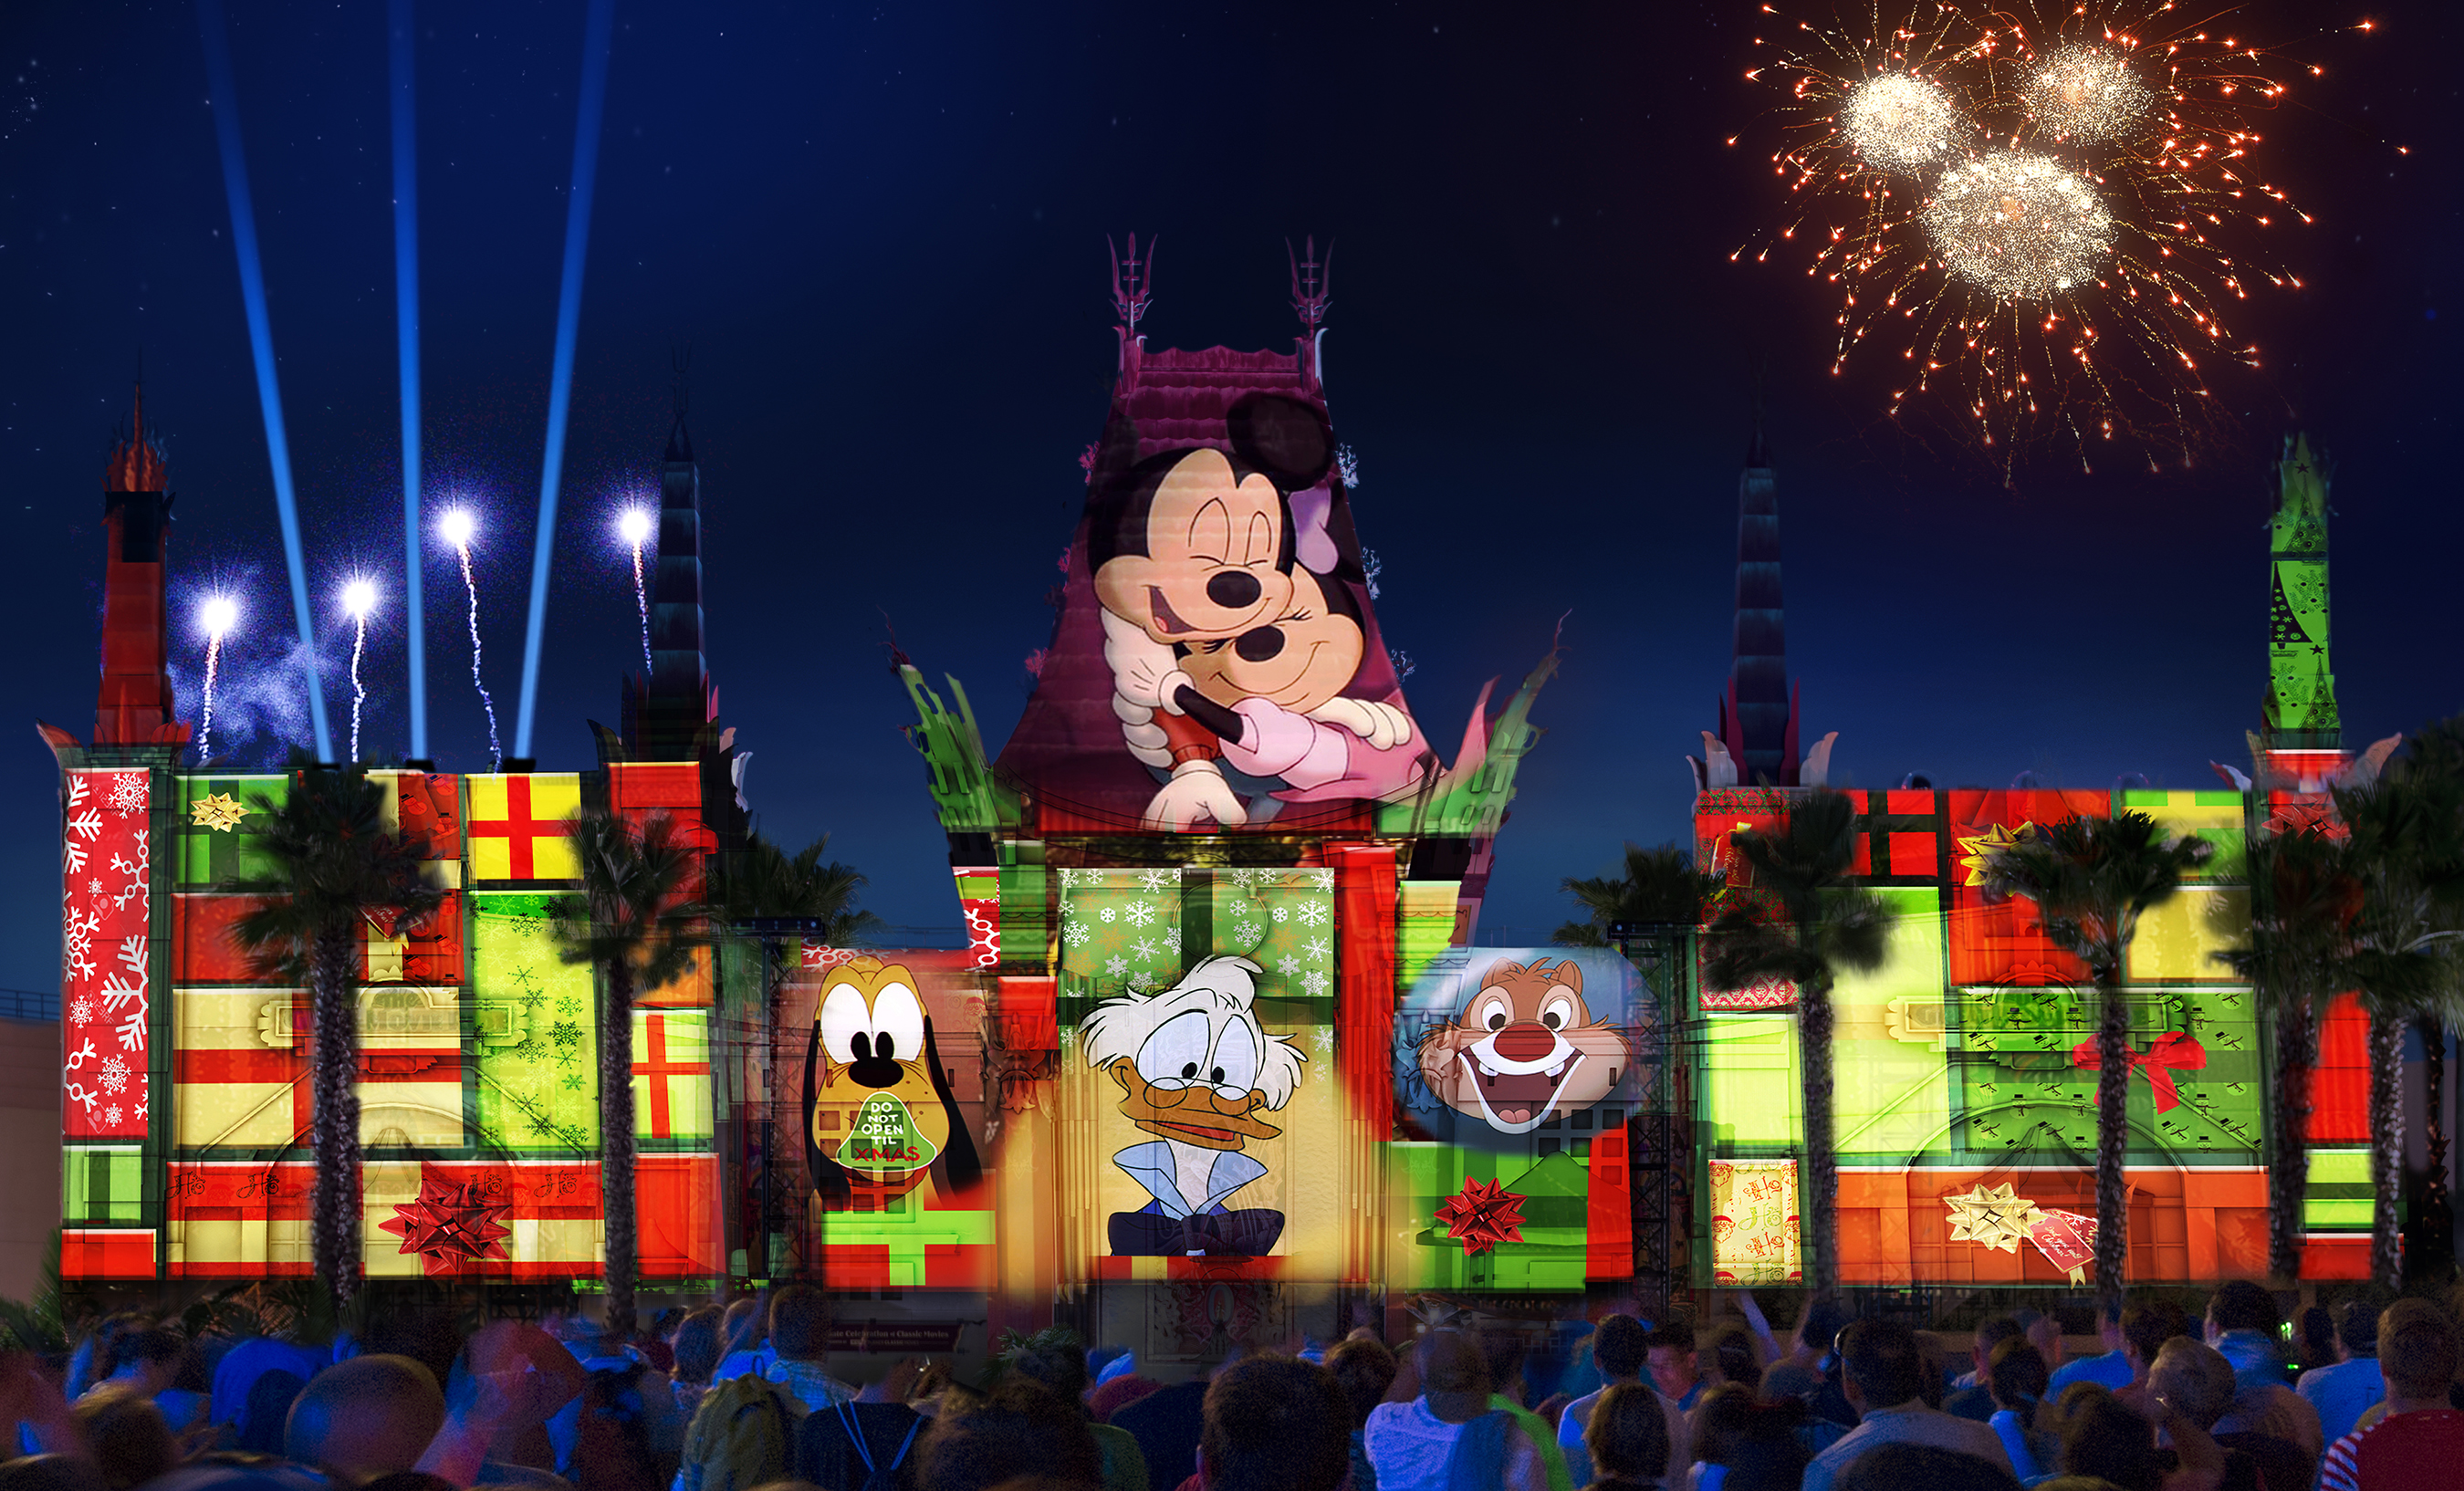 Jingle Bell, Jingle BAM! - Mickey and Friends